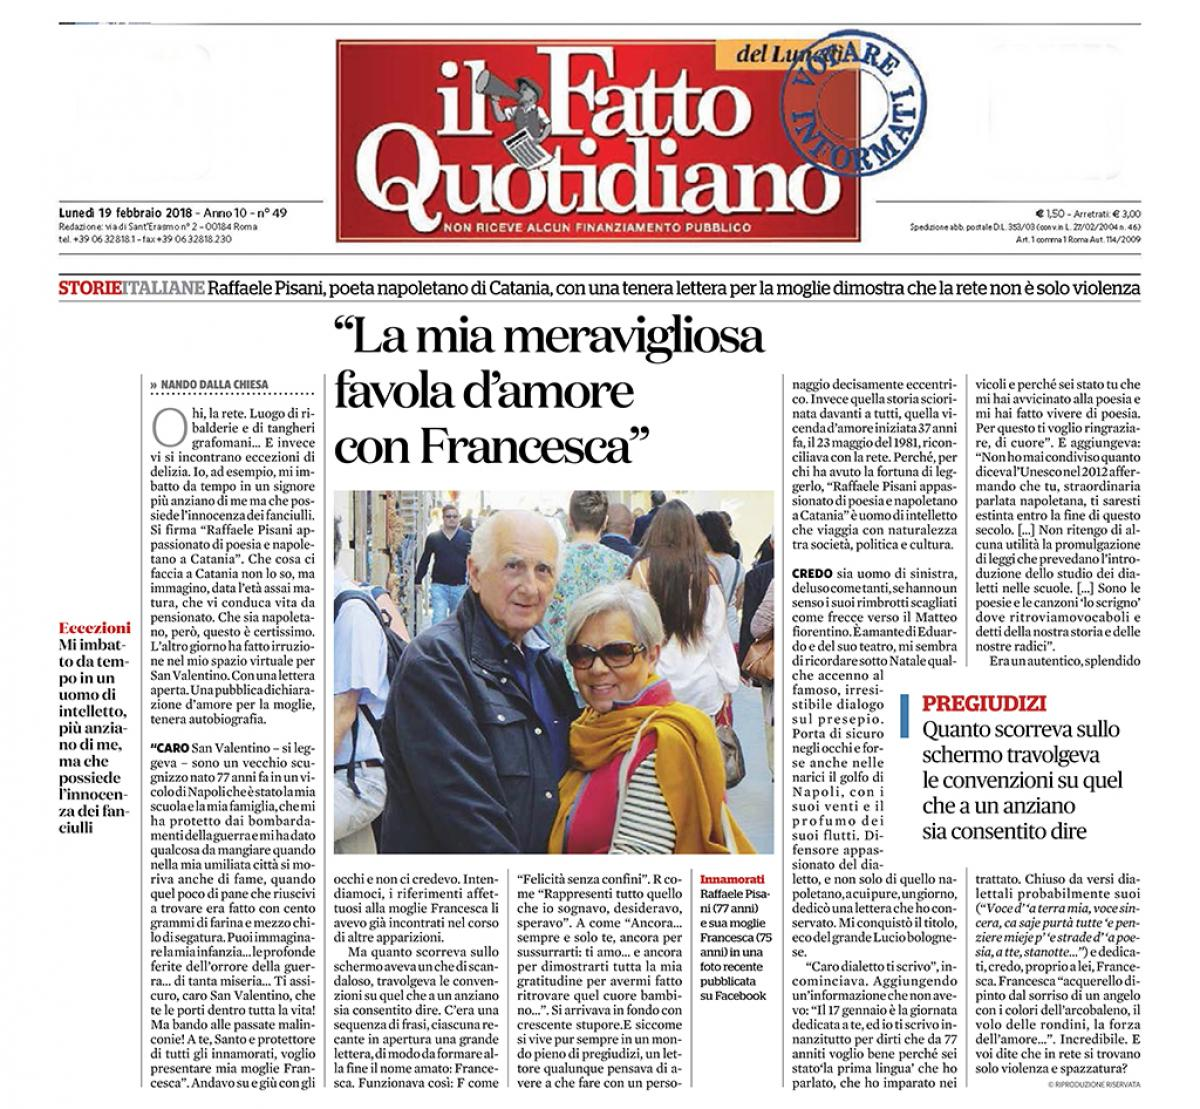 Il Fatto Quotidiano - 19/02/2018